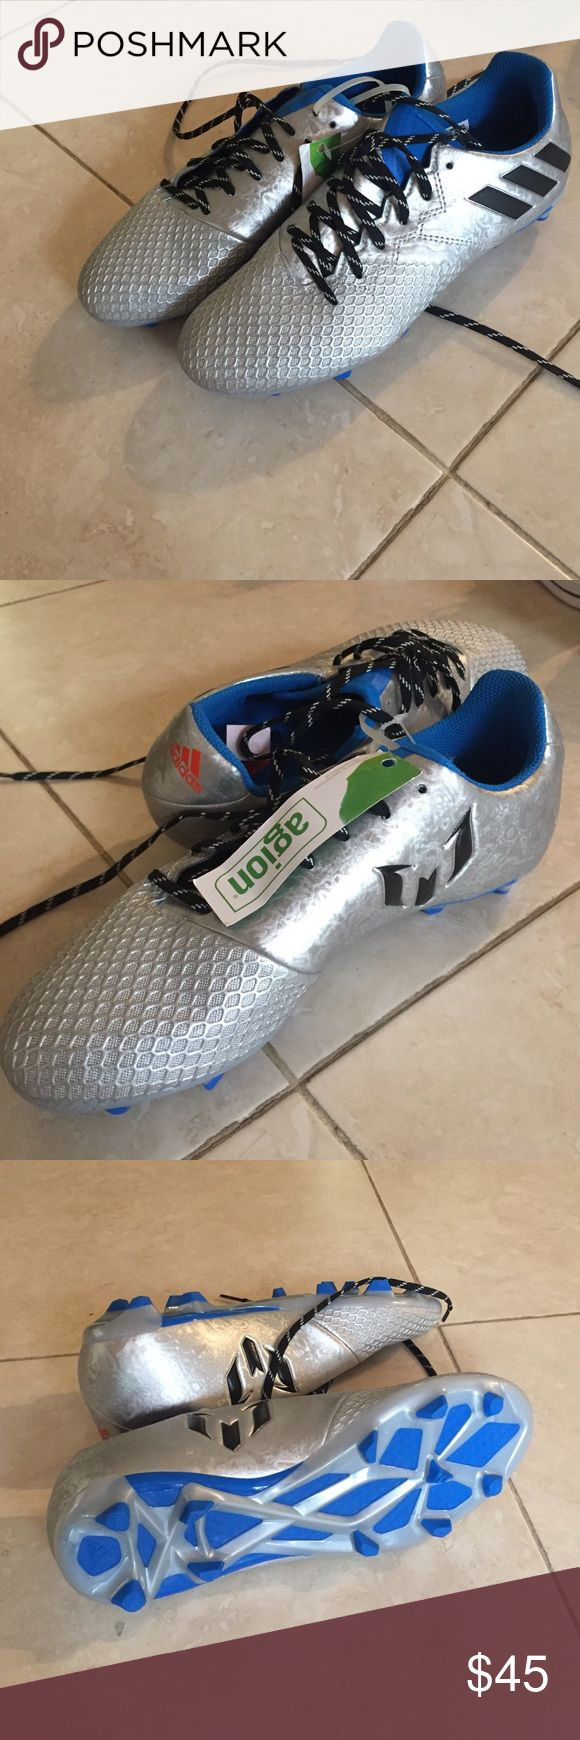 New adidas soccer cleats. Brand new adidas soccer cleats. Messi soccer cleats for kids. Still with tag, no box Adidas Shoes Athletic Shoes